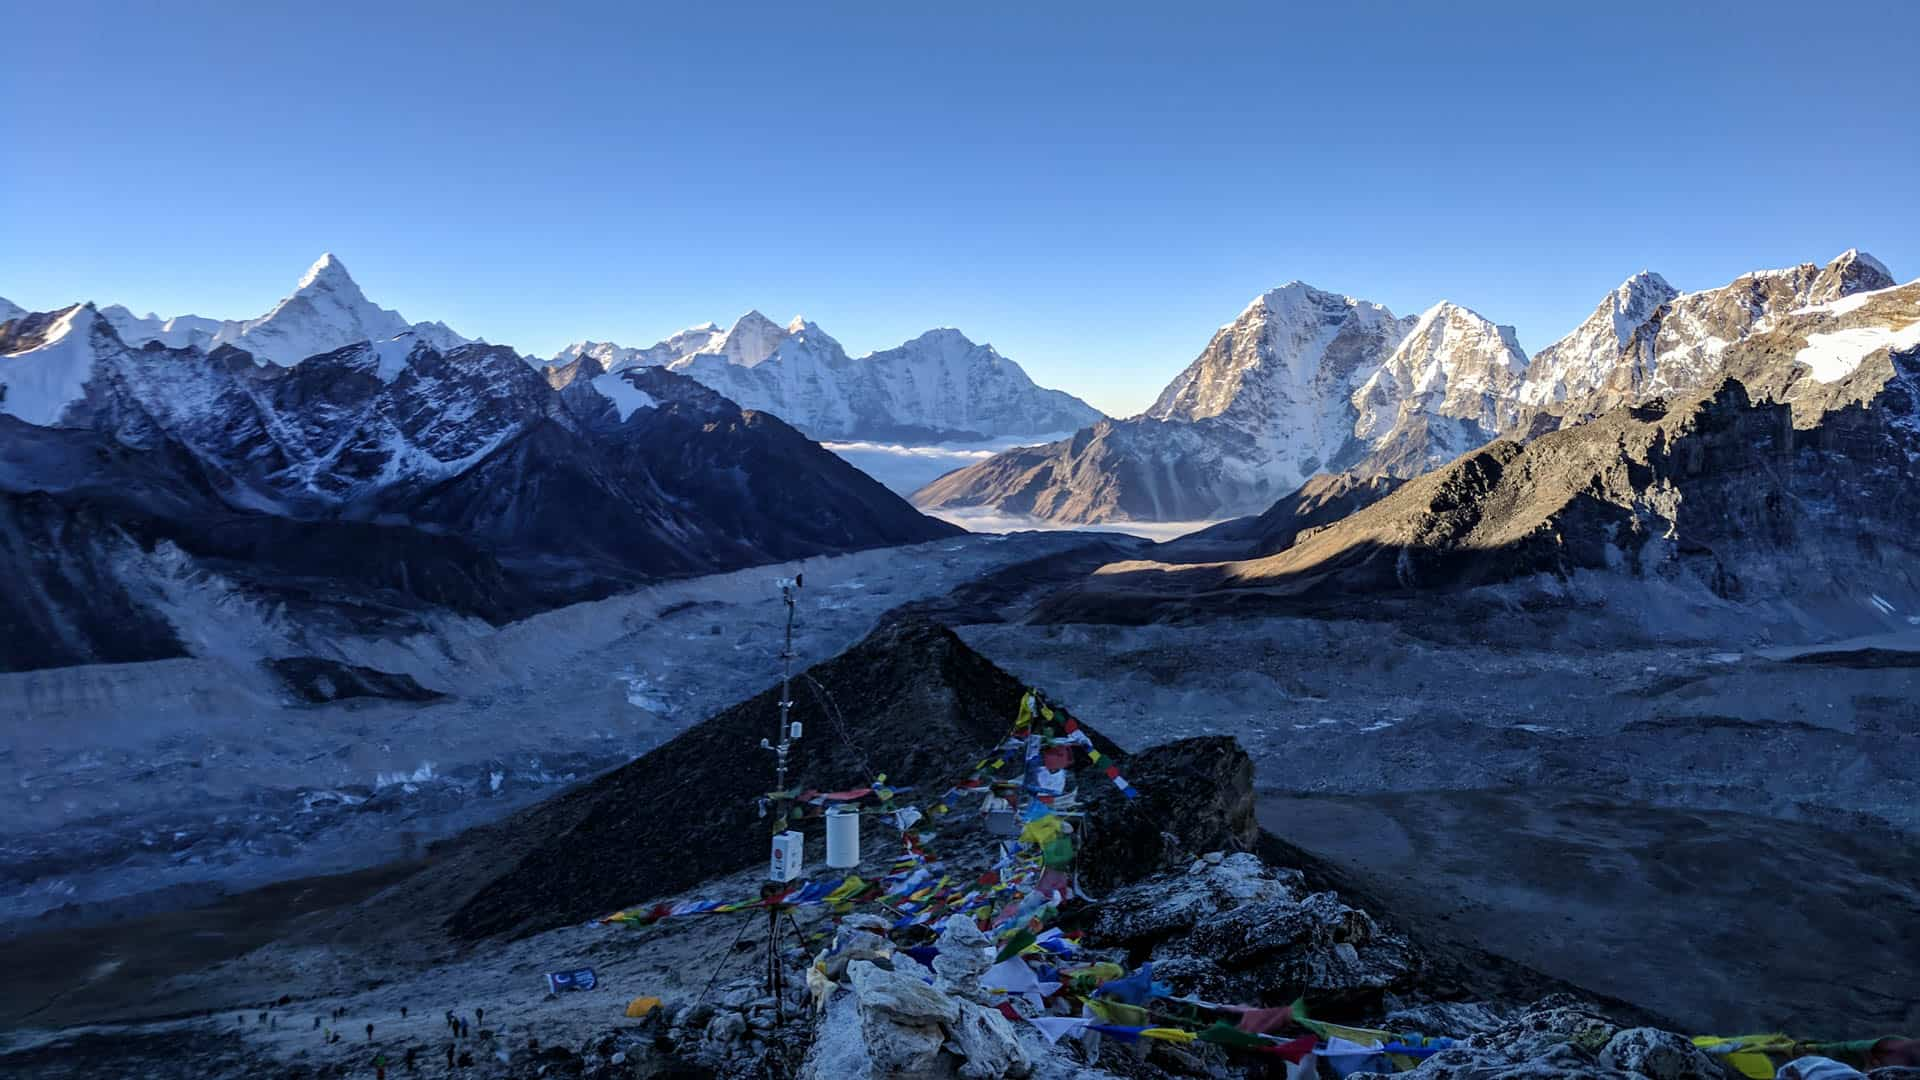 View from the top of Kala Patthar